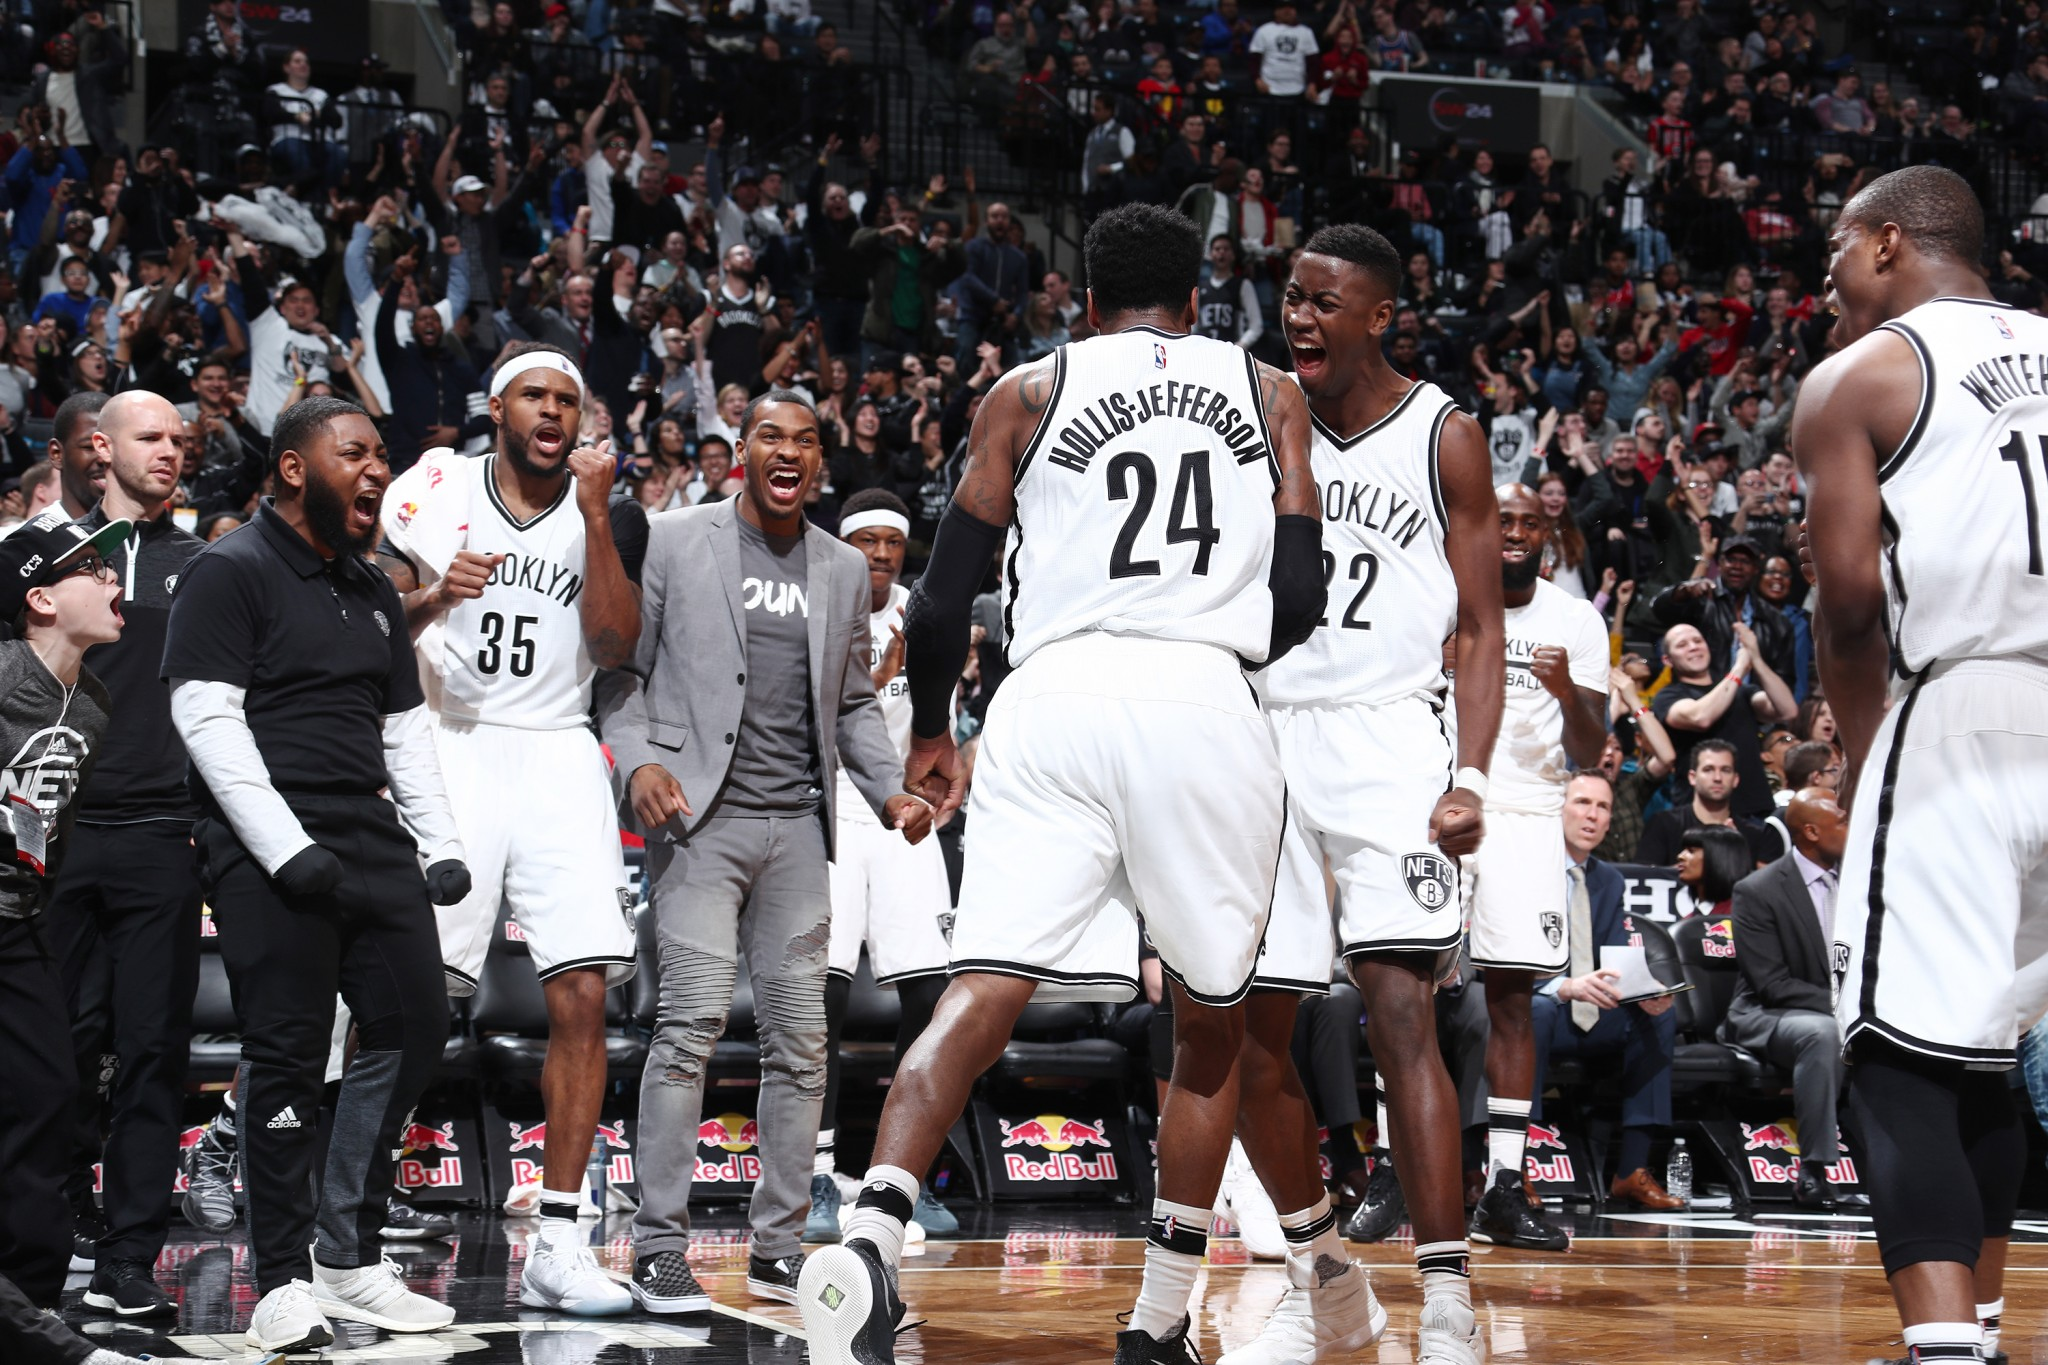 The Nets relished the opportunity to spoil things for the Bulls. (Getty Images)